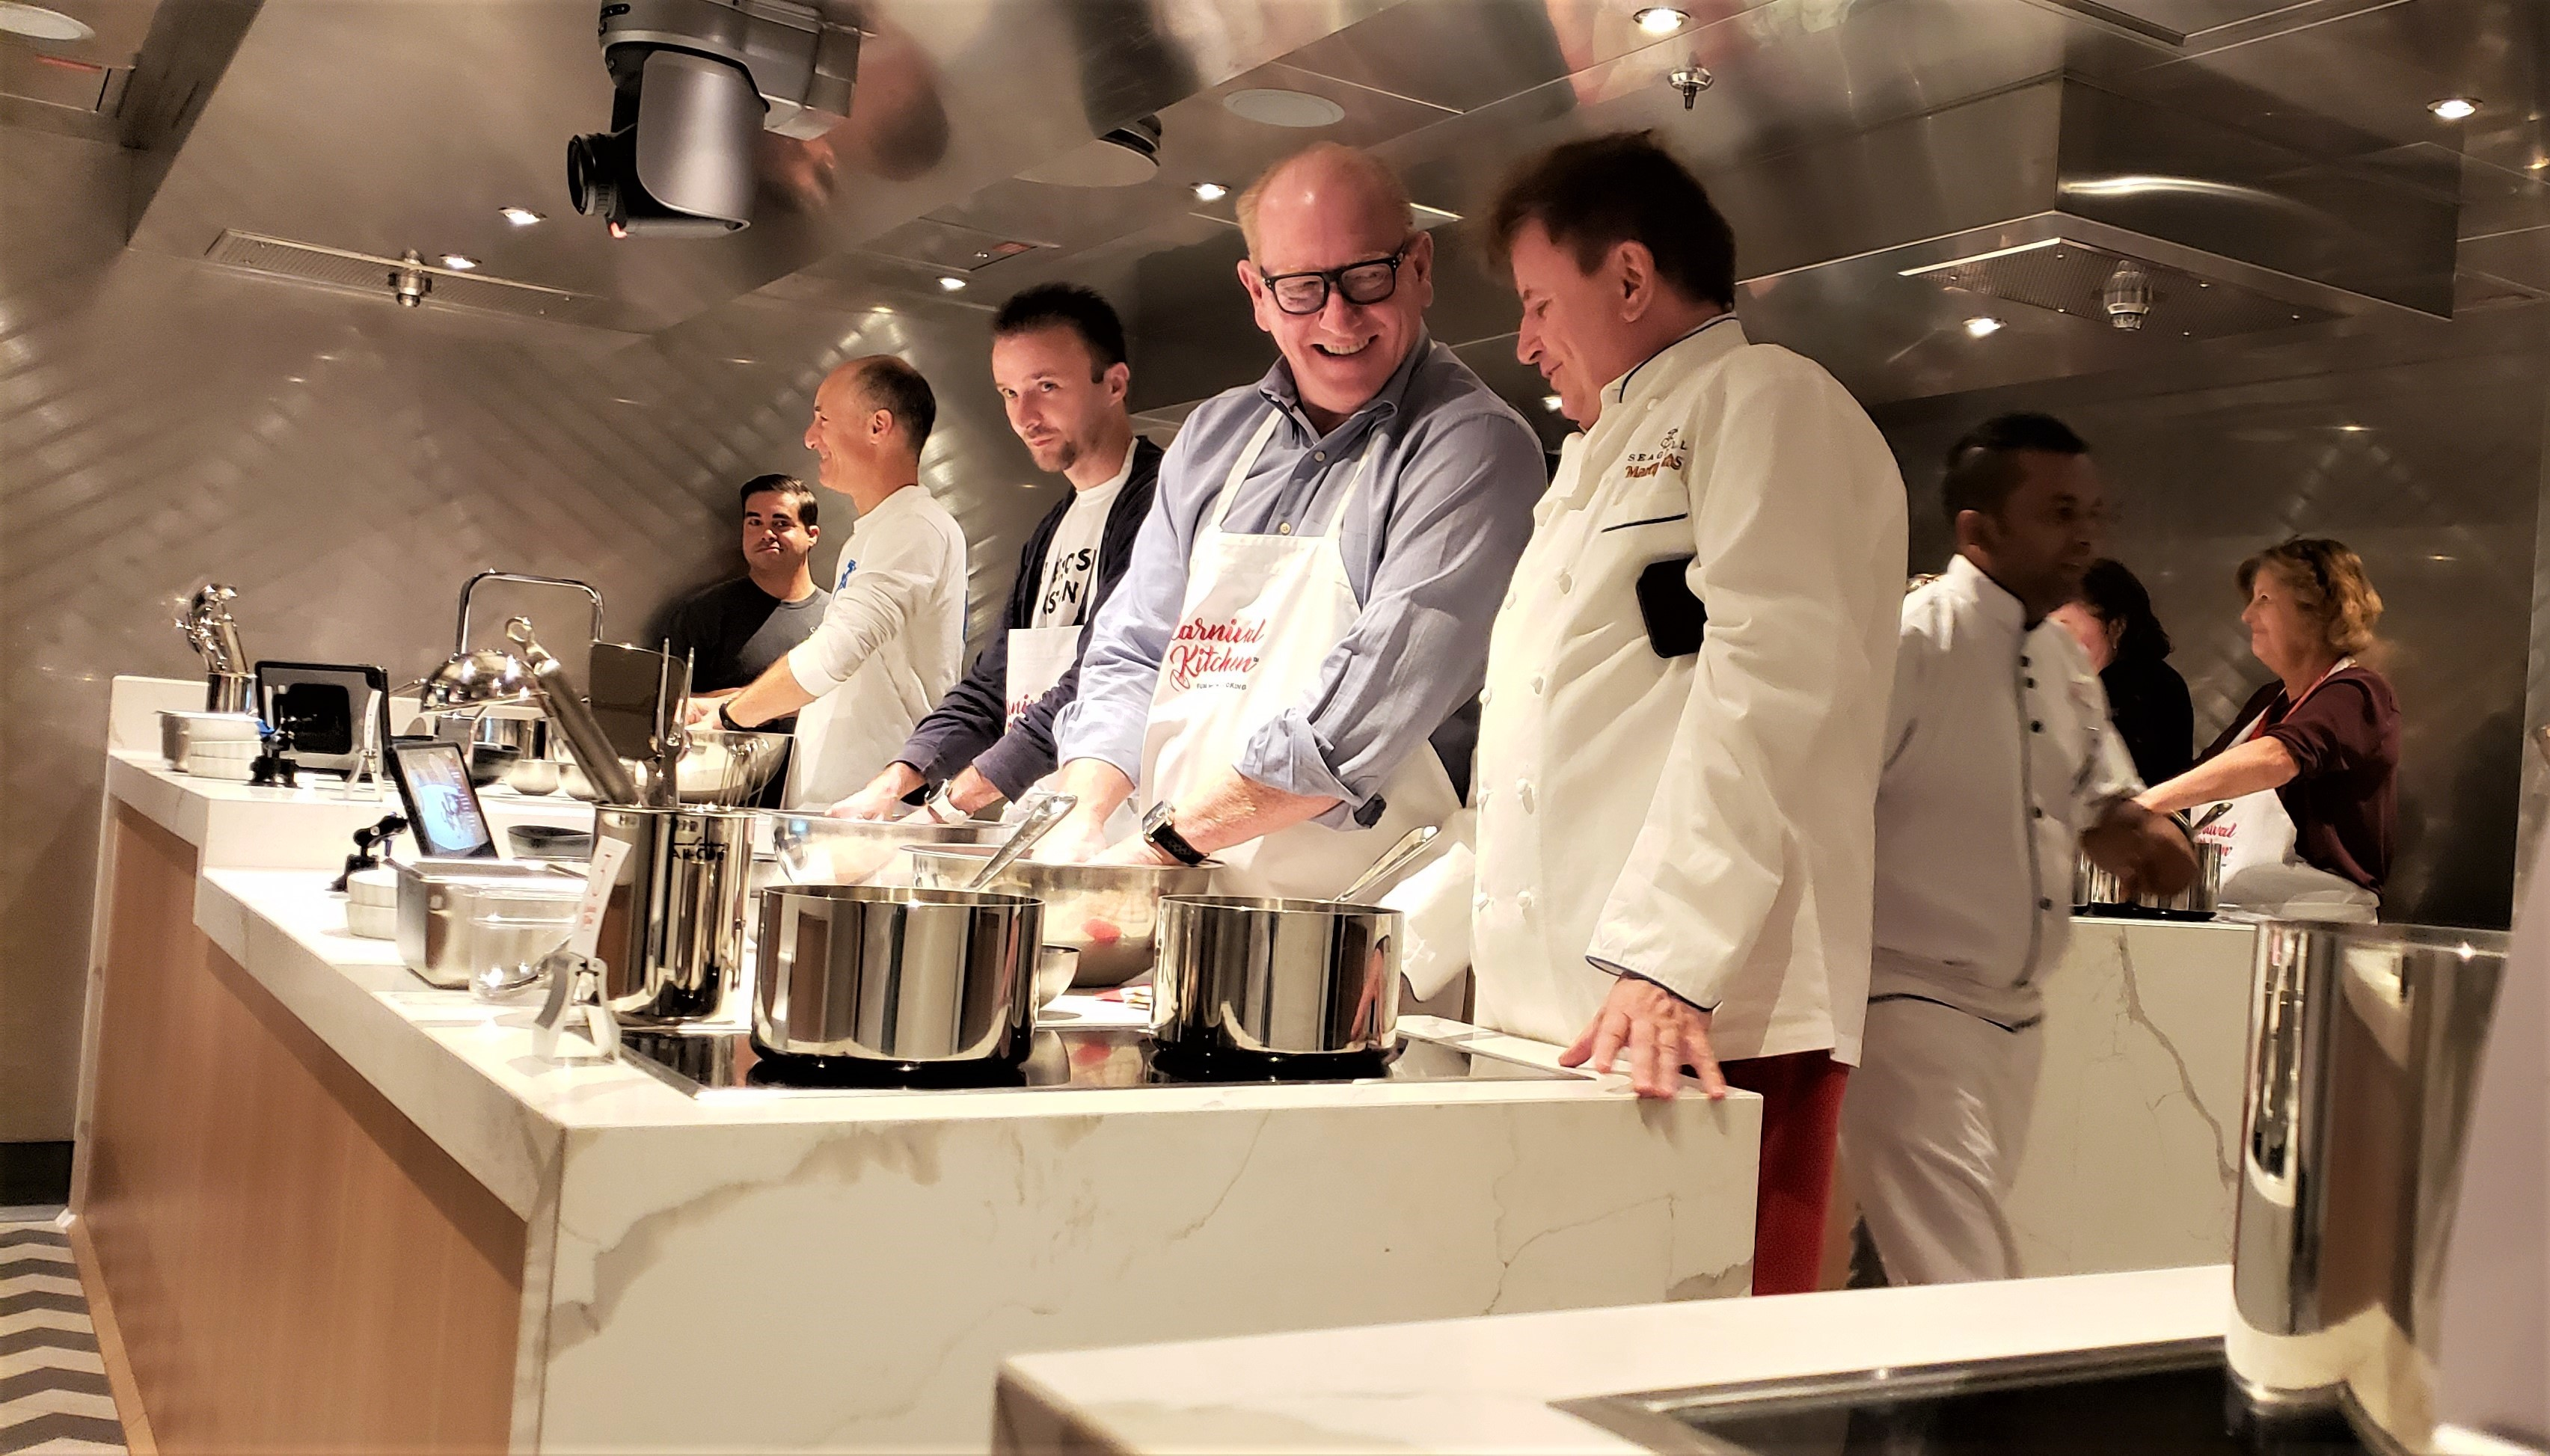 Guests try out the cook stations on the new Carnival Kitchen with Chef Rudi Sodamin (at right). Photo by Susan J. Young